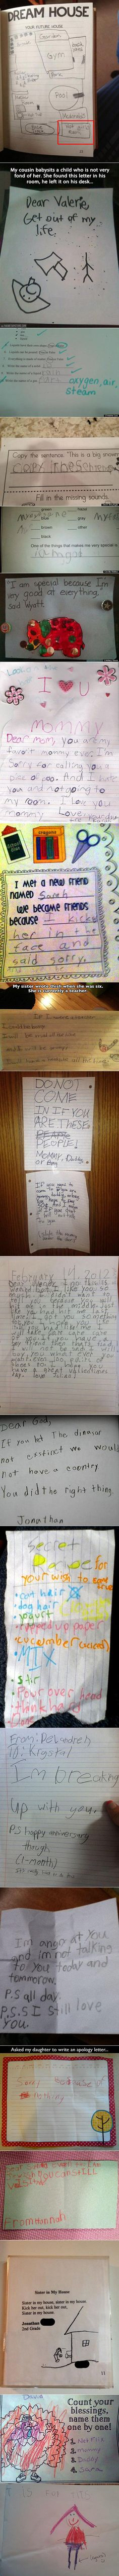 We have rounded up some funny and unusual, yet real, notes from geeky kids. Ha this is hilarious! Funny Shit, Funny Pins, Funny Cute, The Funny, Funny Memes, Hilarious, Funny Stuff, Jokes, I Love To Laugh